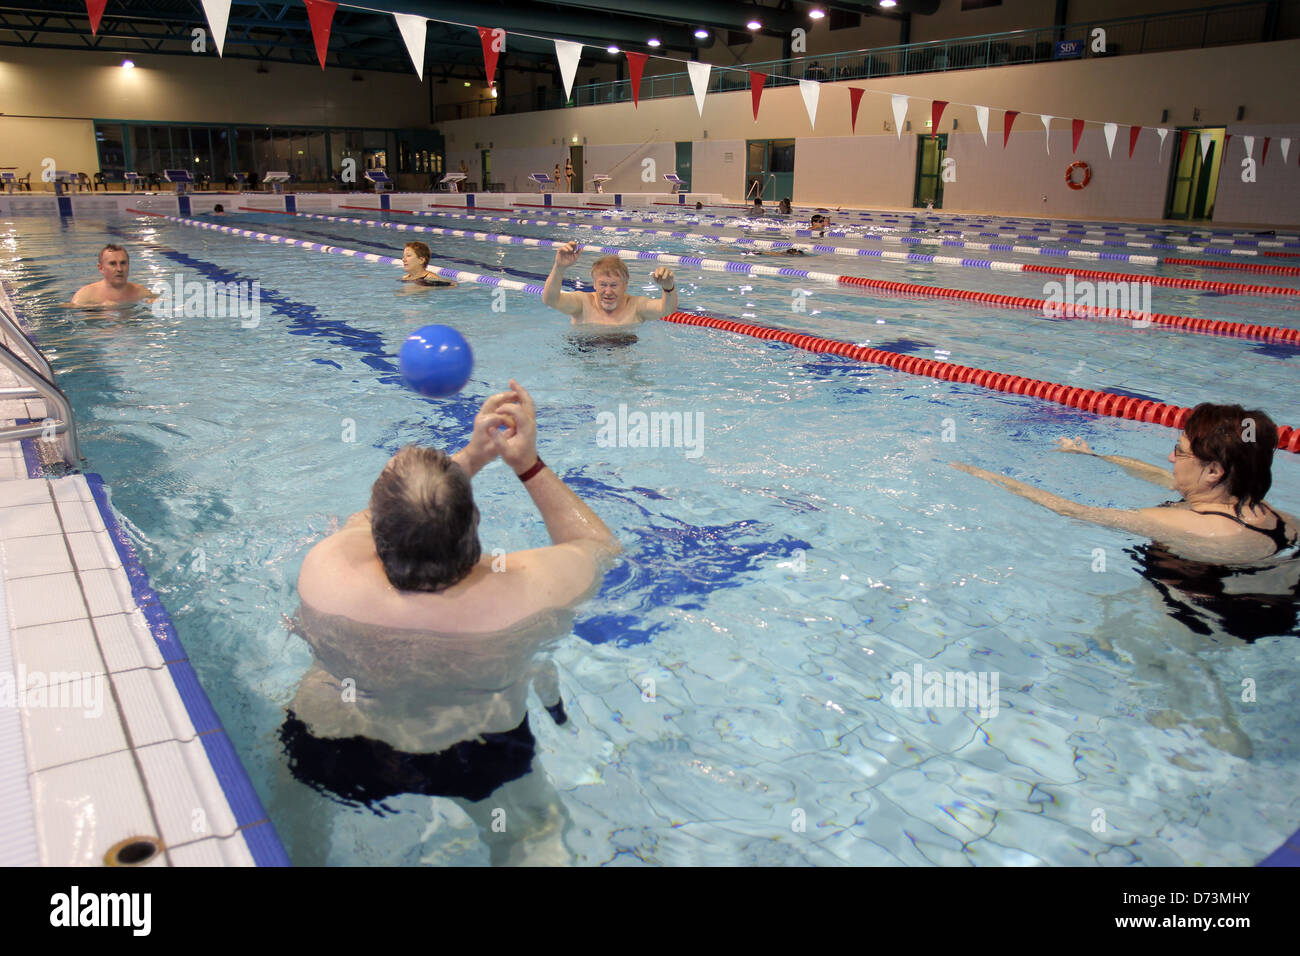 Cash Pool Flensburg Flensburg Germany Aqua Aerobics In A Swimming Pool Stock Photo